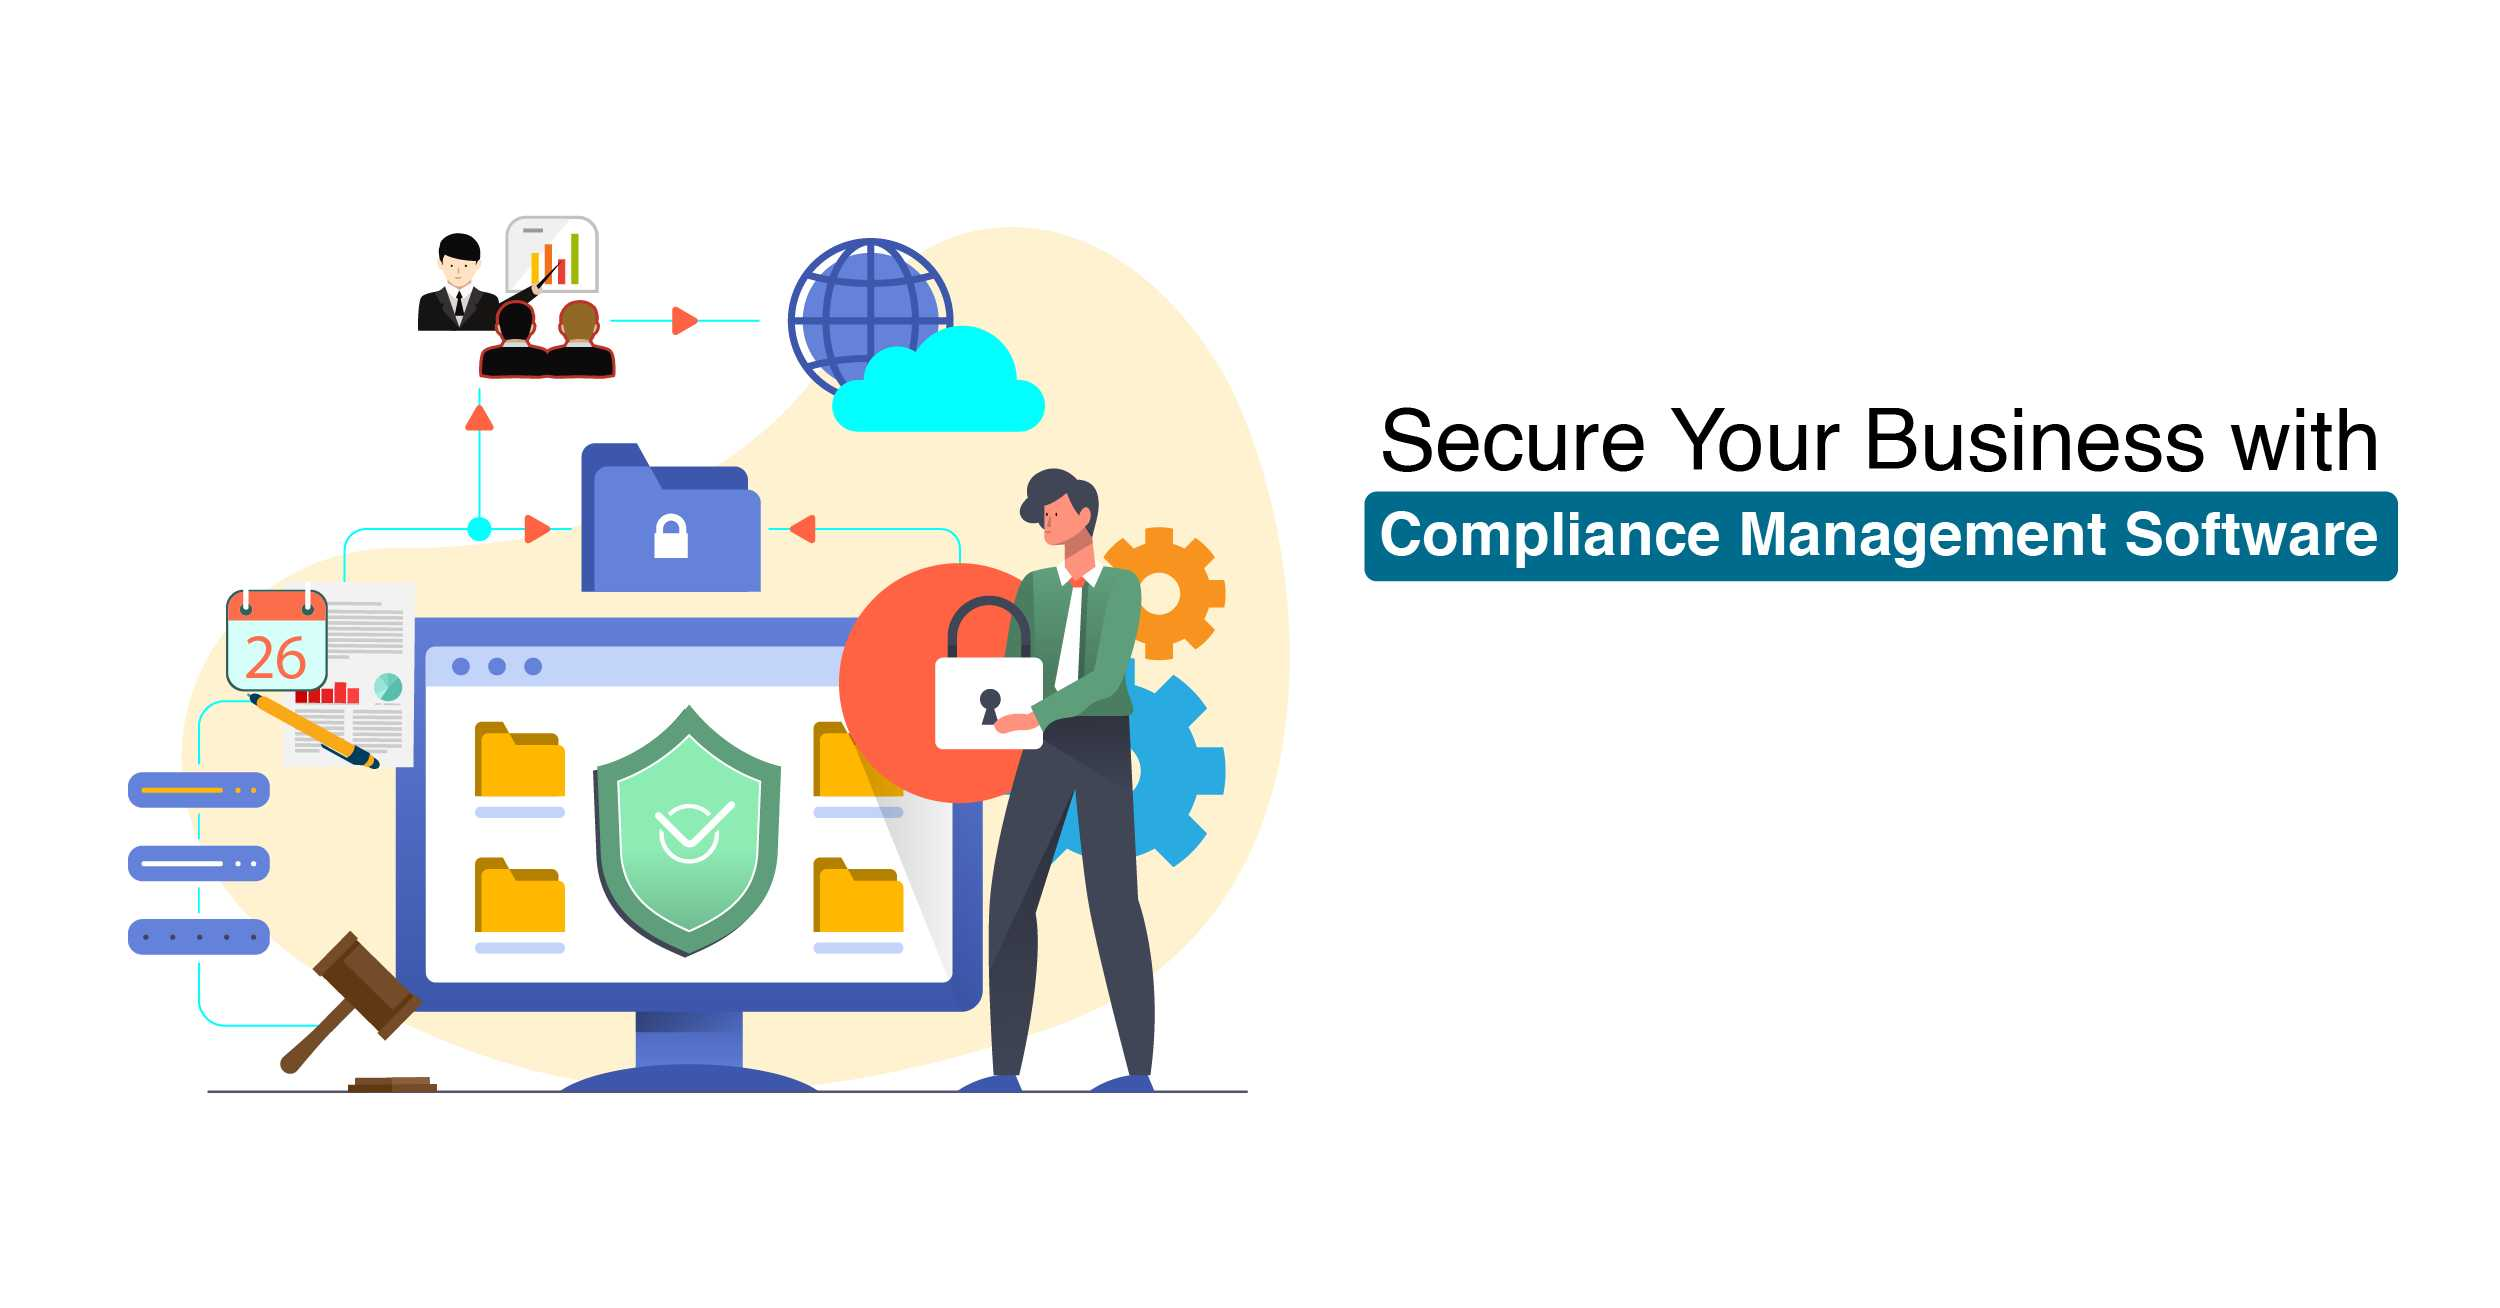 Secure Your Business with Compliance Management Software